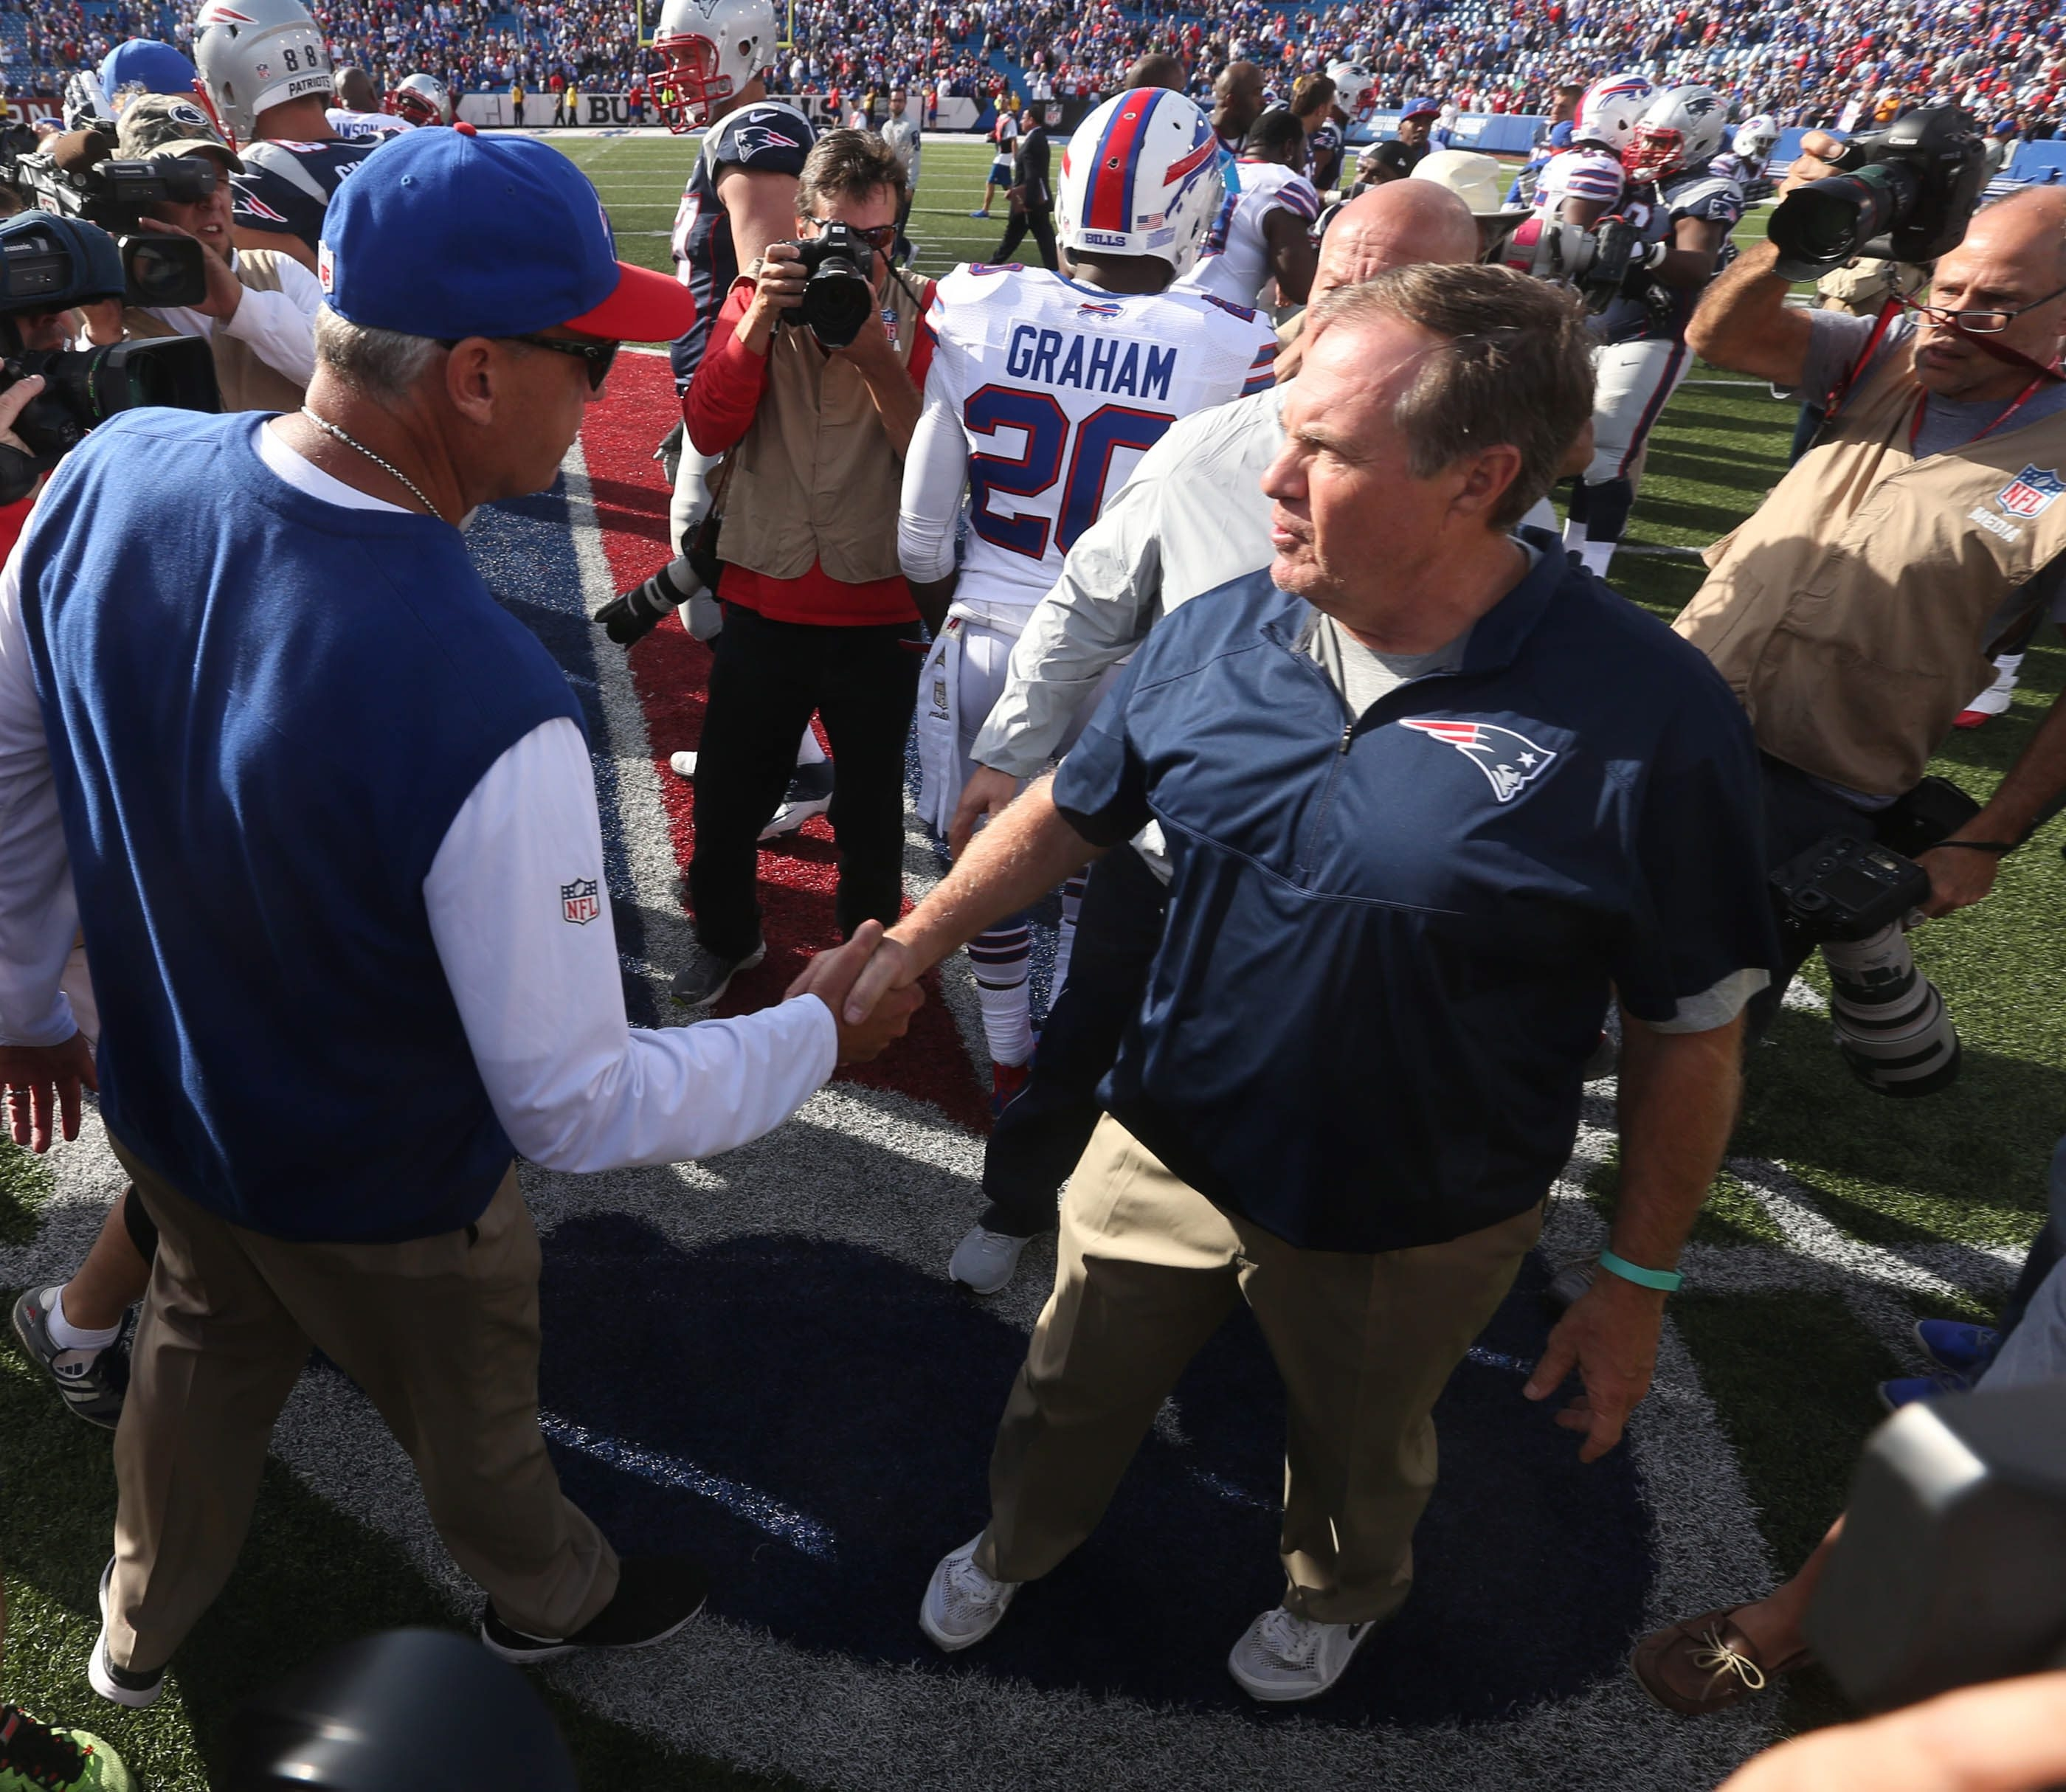 Why would Bills coach Rex Ryan, left, want to get under the skin of the Patriots' Bill Belichick before a game? Ryan has a record of 1-9 against New England since his Jets team beat them in a 2011 playoff.